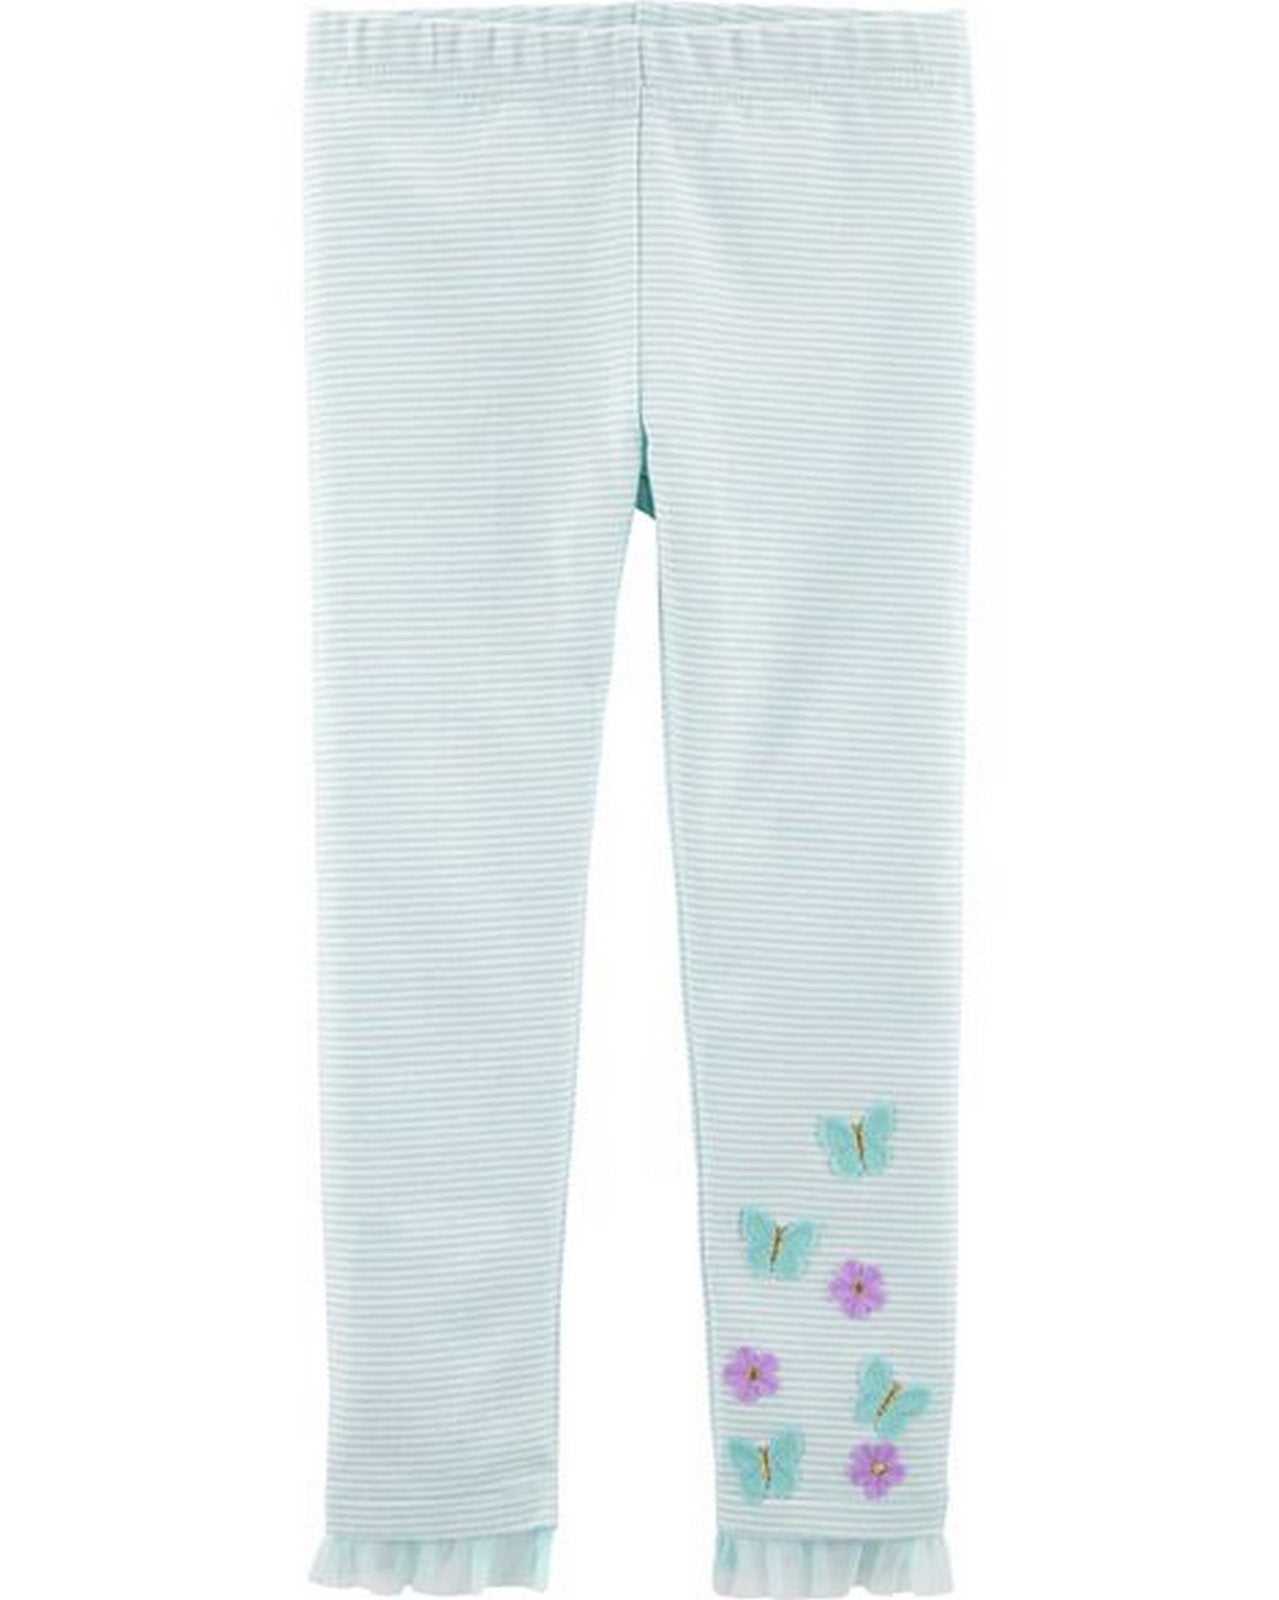 Carter's Butterfly Leggings  Modelo 258H268